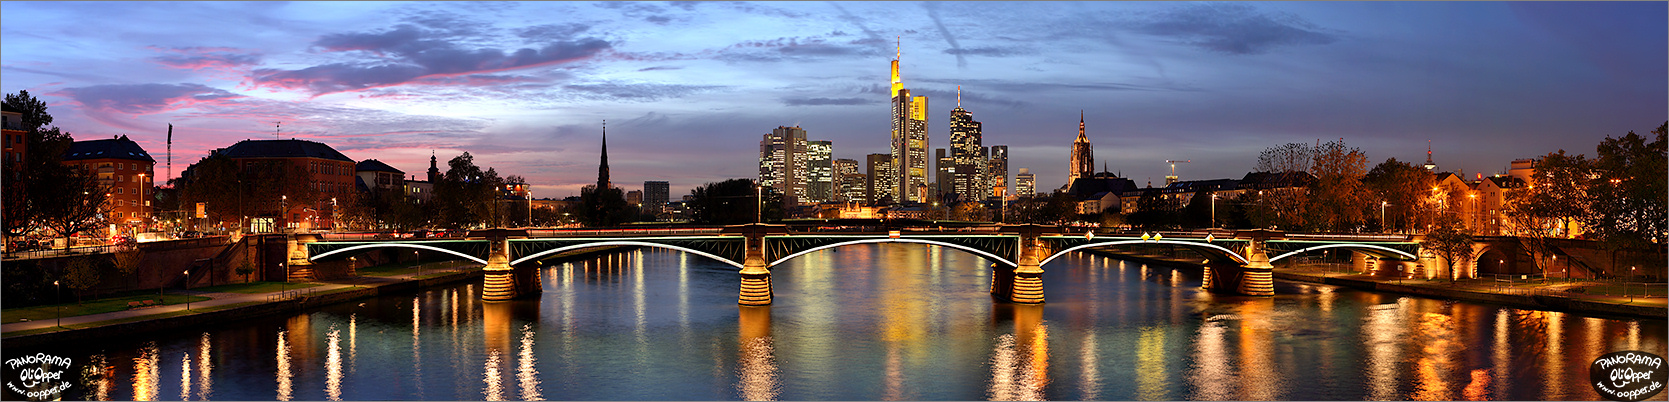 frankfurt skyline zur blauen stunde p143. Black Bedroom Furniture Sets. Home Design Ideas